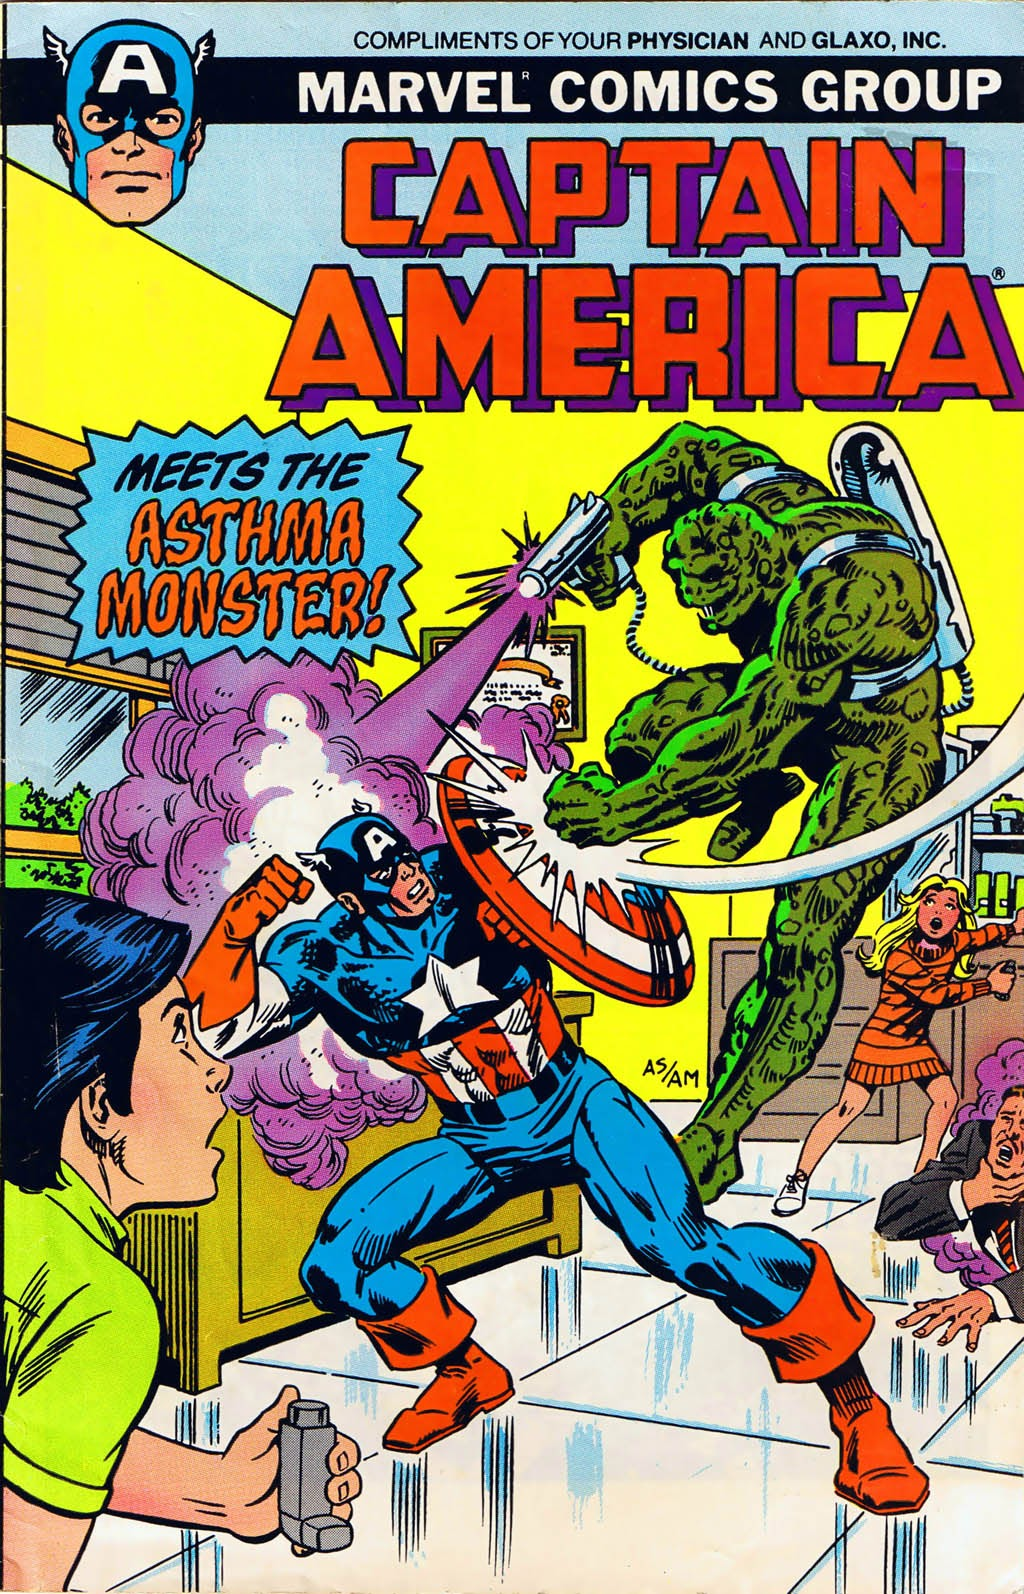 Captain America Meets the Asthma Monster Full Page 1